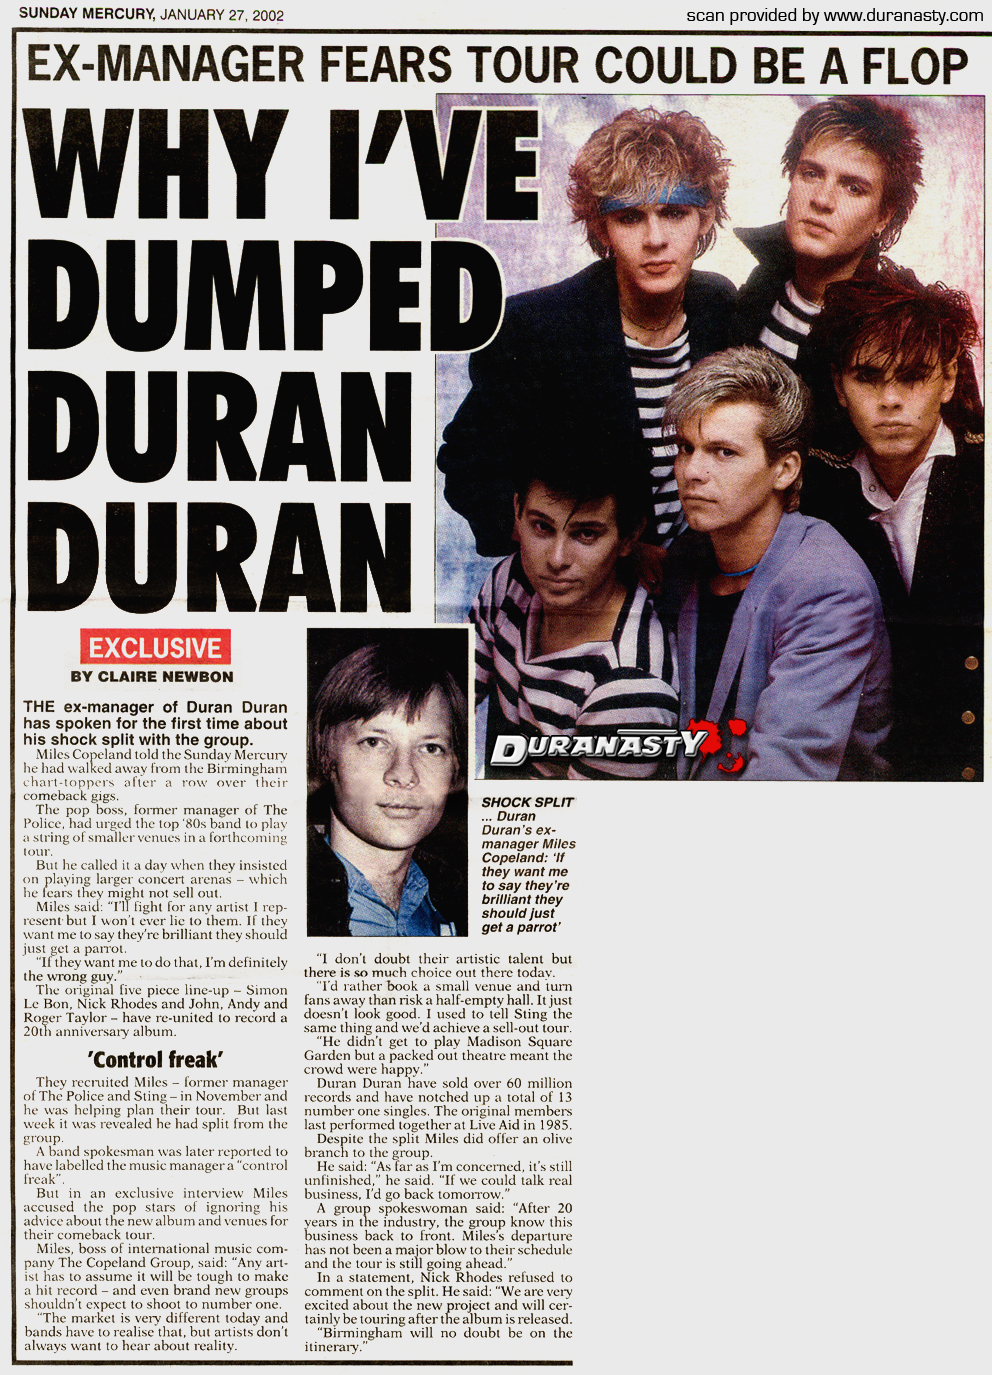 The life and times of d u r a n a s t y i will just say that a duran duran spokesman was reported to have labelled the music manager a control freak well wasnt nick who wrote a piece of buycottarizona